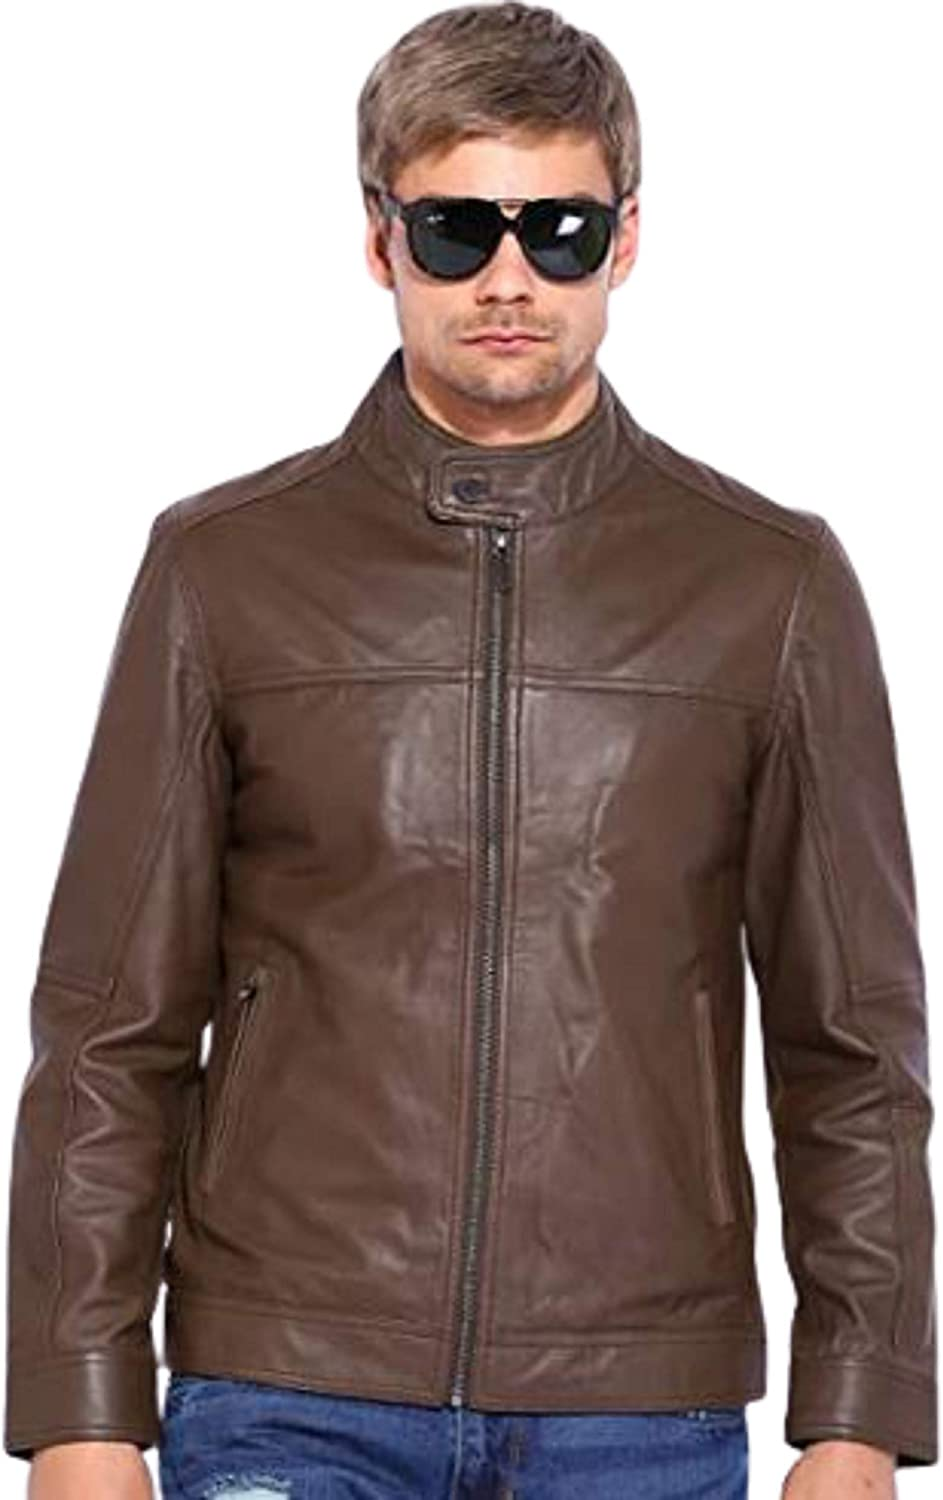 TOM JACK Leather Biker Jacket with Multiple Styles For Men And Boys